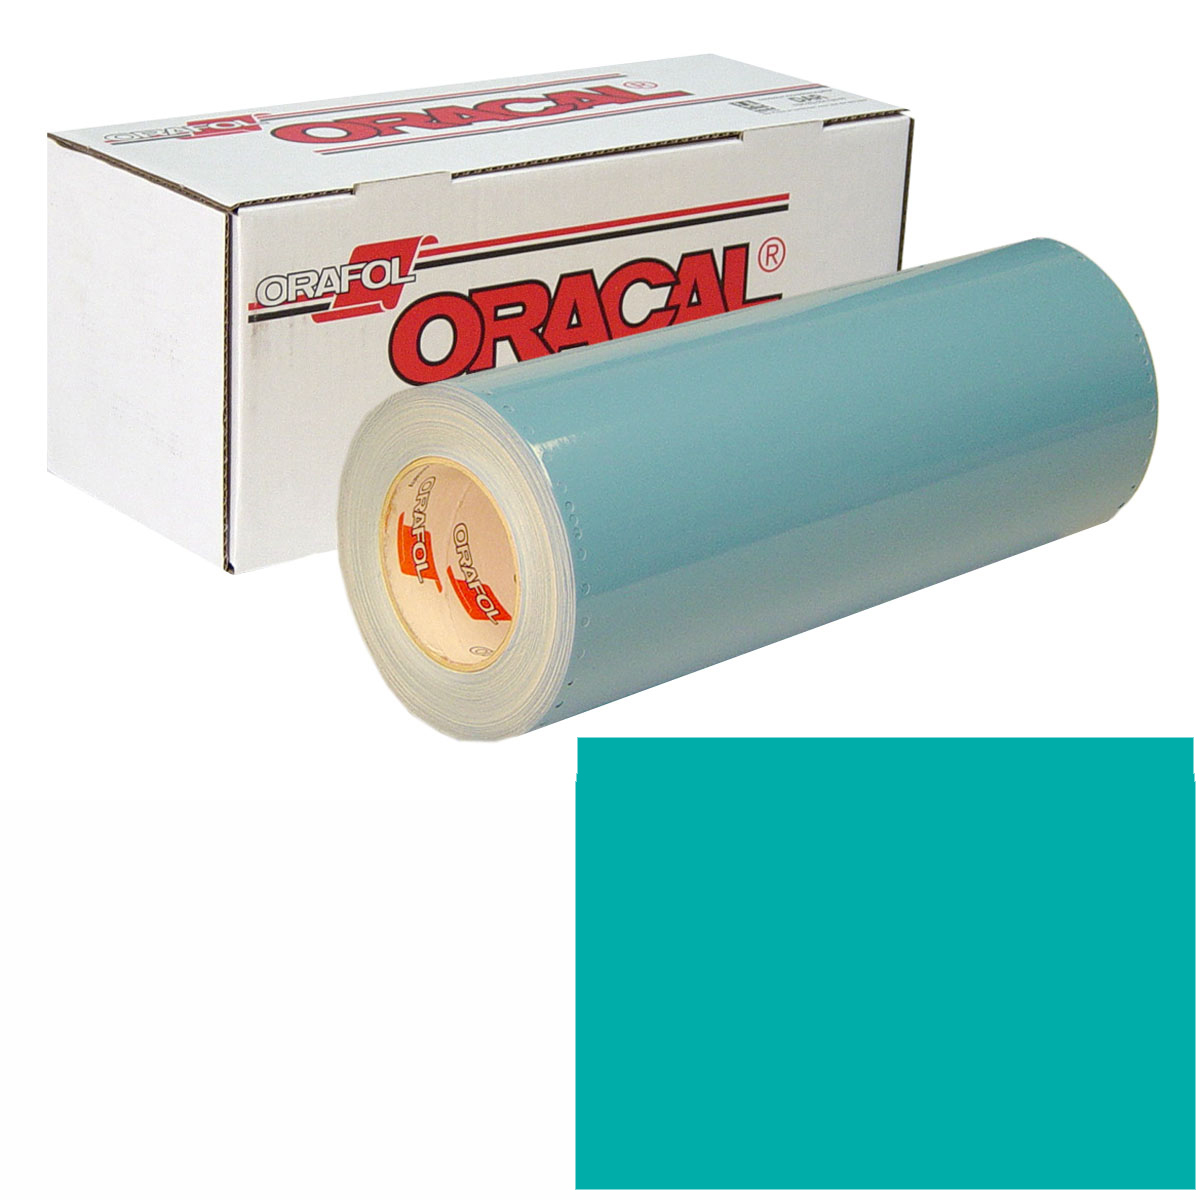 ORACAL 751 15In X 10Yd 054 Turquoise